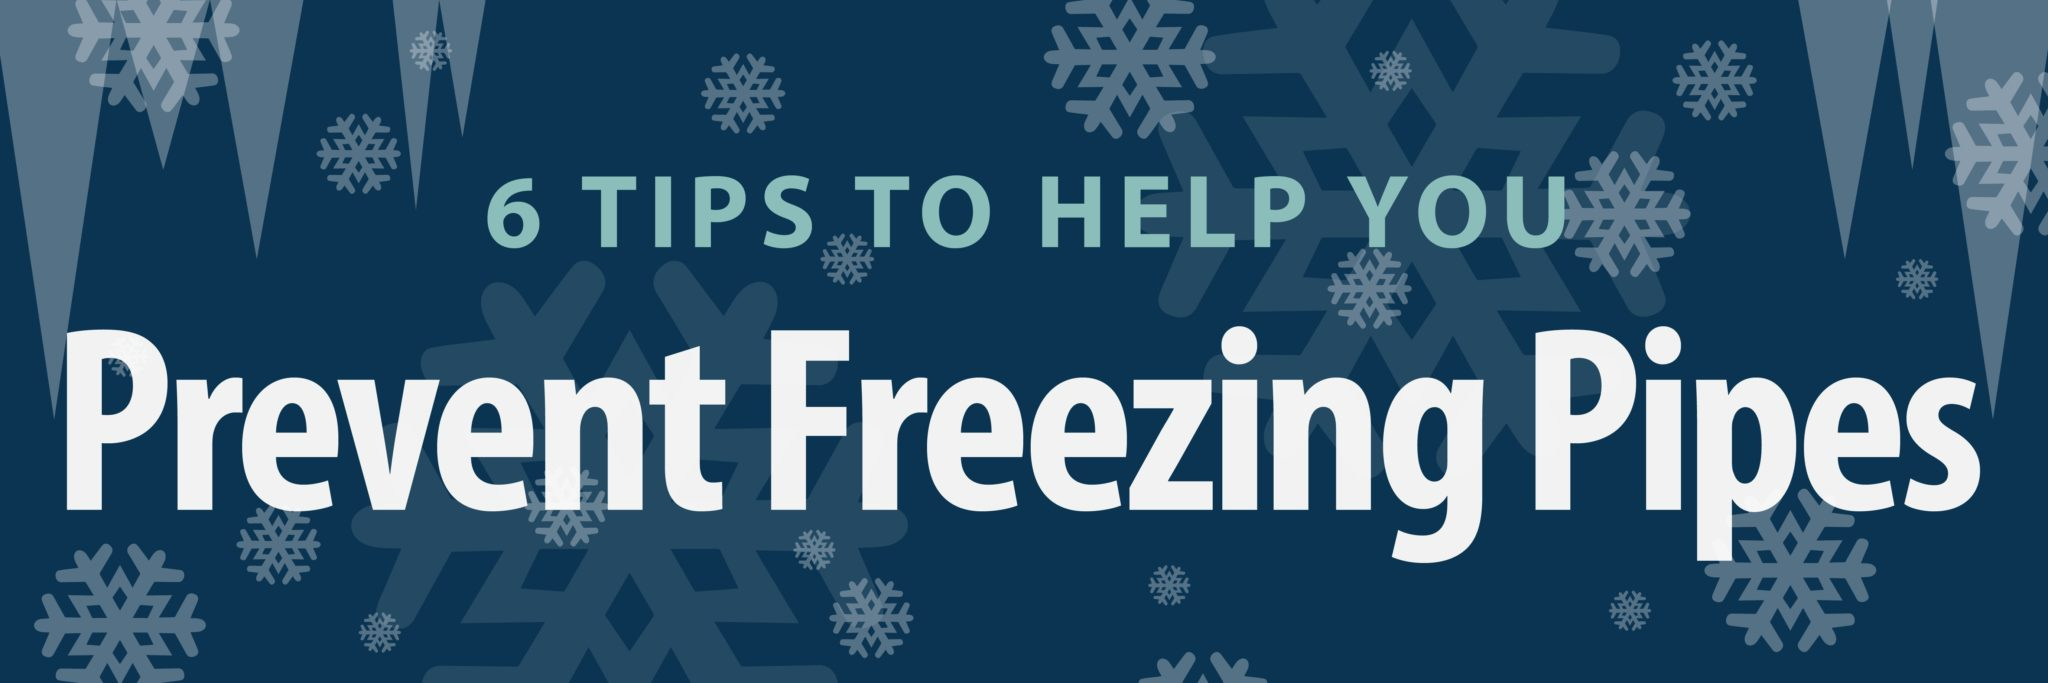 Concerned About Preventing Freezing Pipes This Winter? Here's What You Need To Know